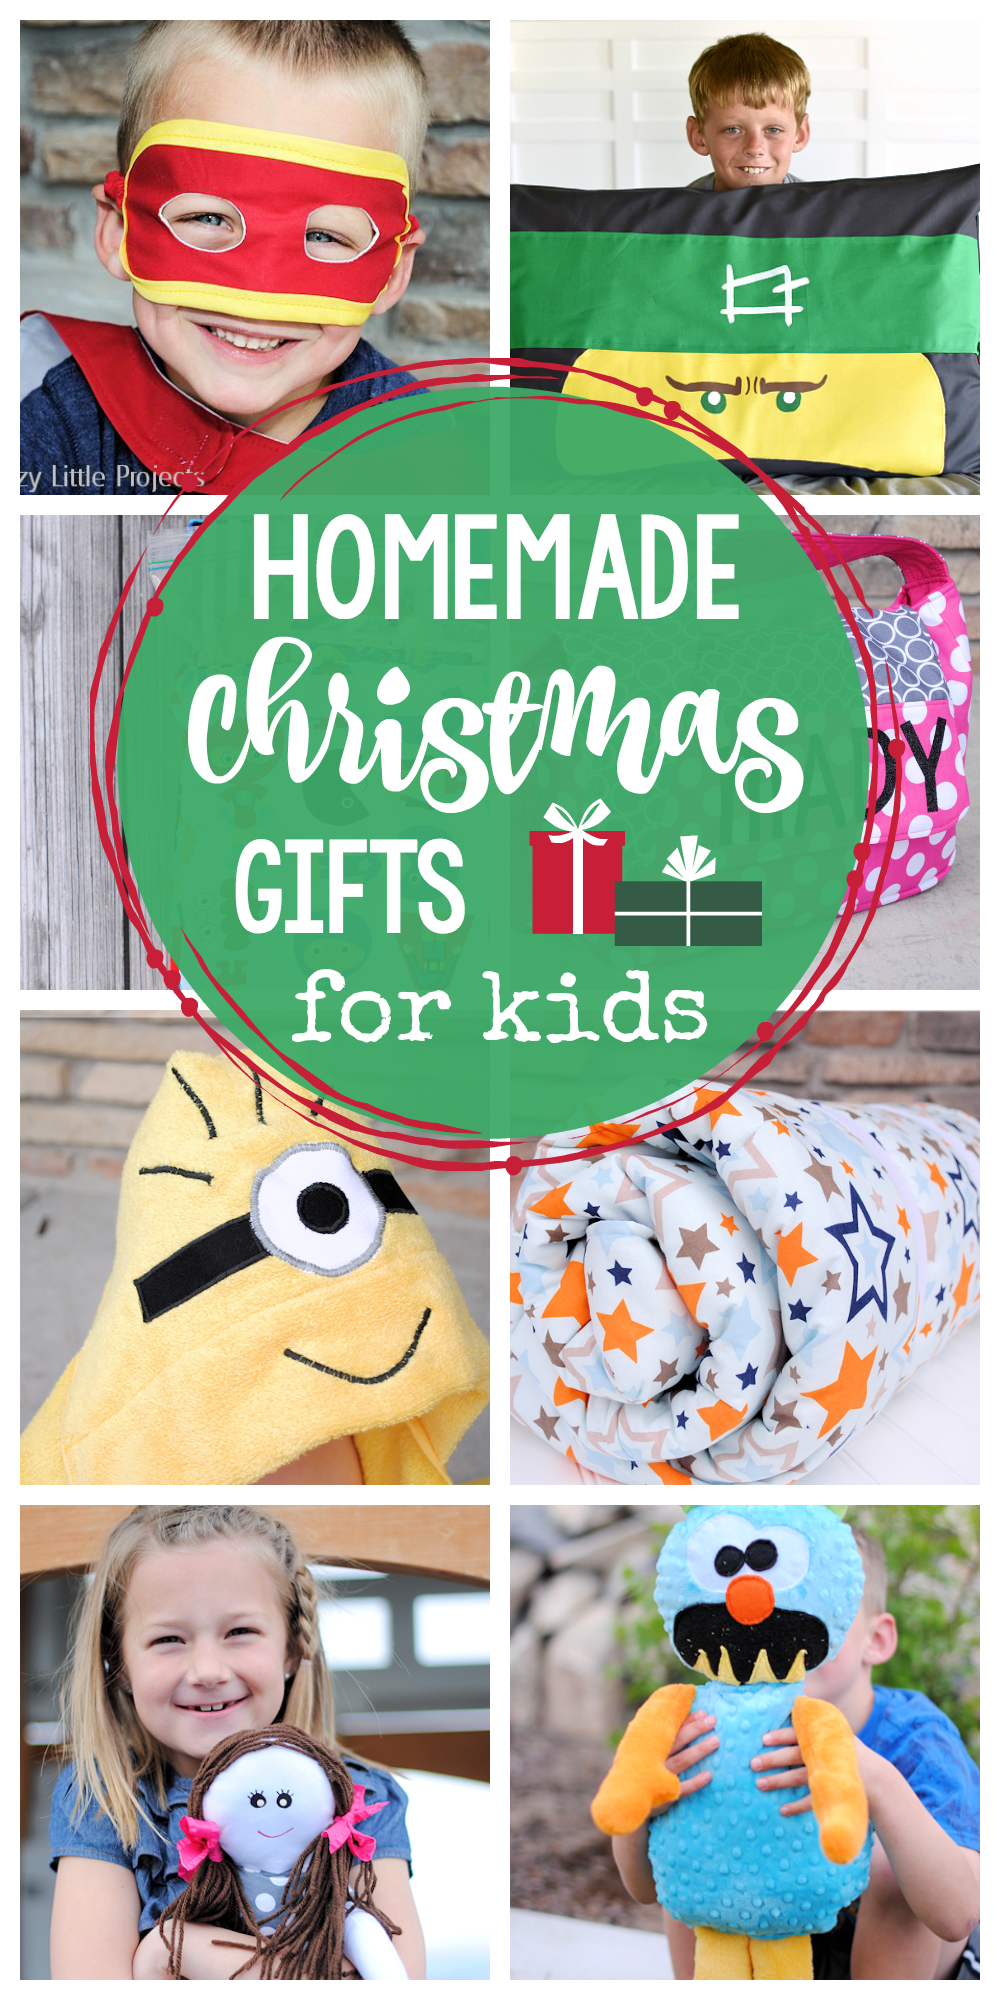 25 Cute Homemade Christmas Gifts for Kids-Fun ideas of things to make for the kids this year. #Christmas #gifts #christmasgifts